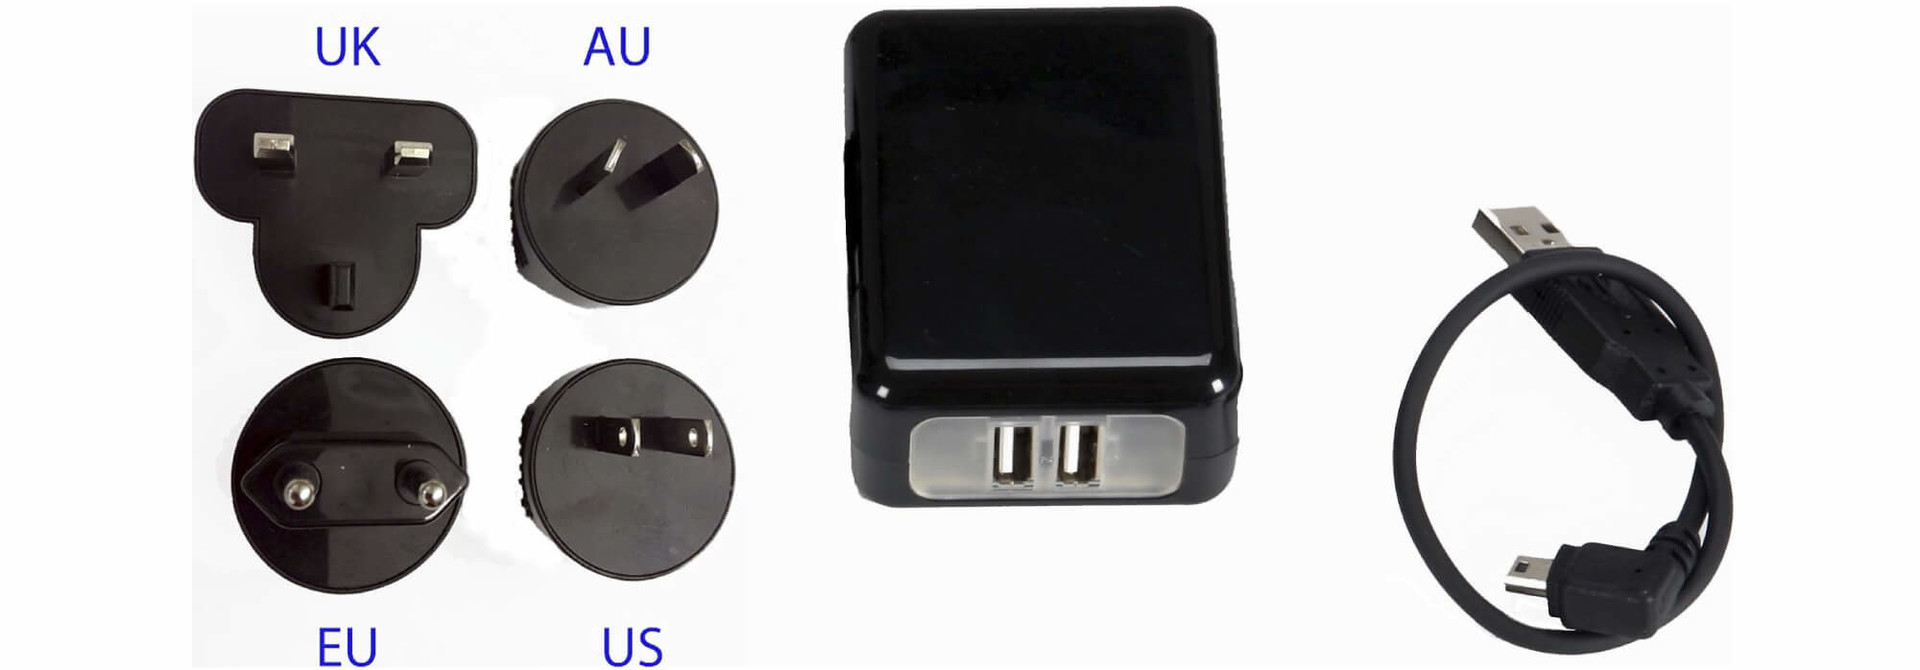 Flux USB Charger